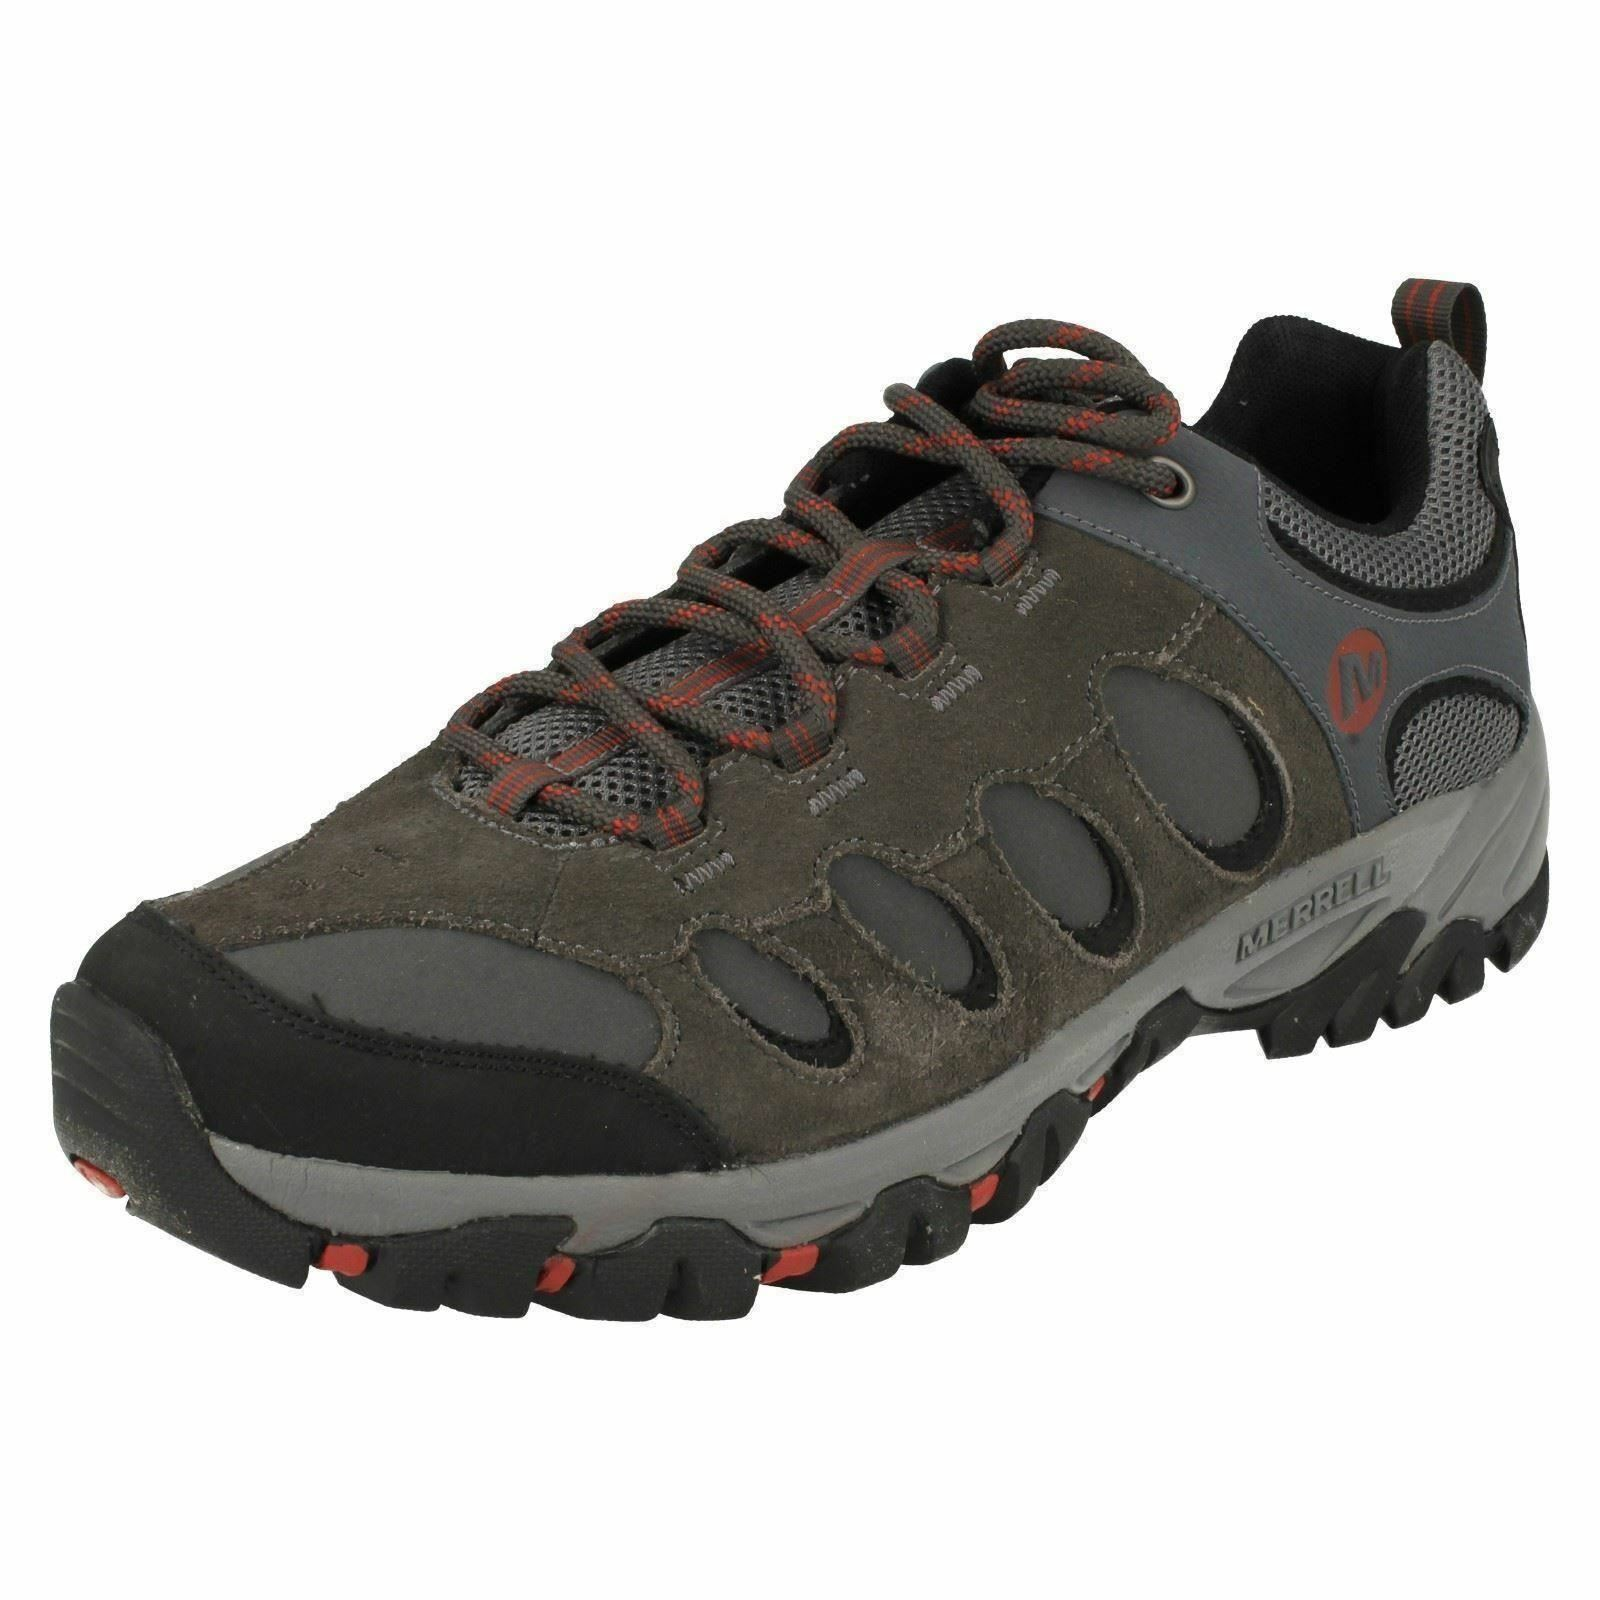 Uomo Leder Lace Ridgepass Up Merrel Walking Trainers Ridgepass Lace Bolt 6ecdc8